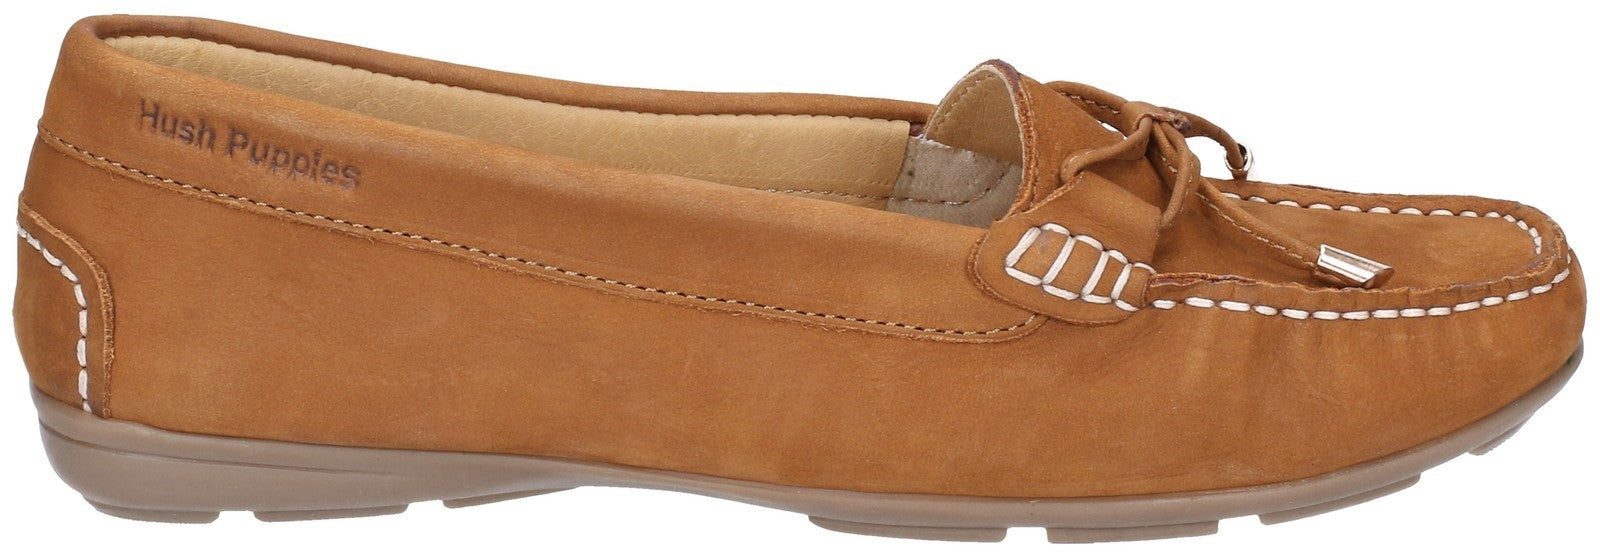 Hush Puppies Women's Maggie Slip On Toggle Shoe Various Colours 28405